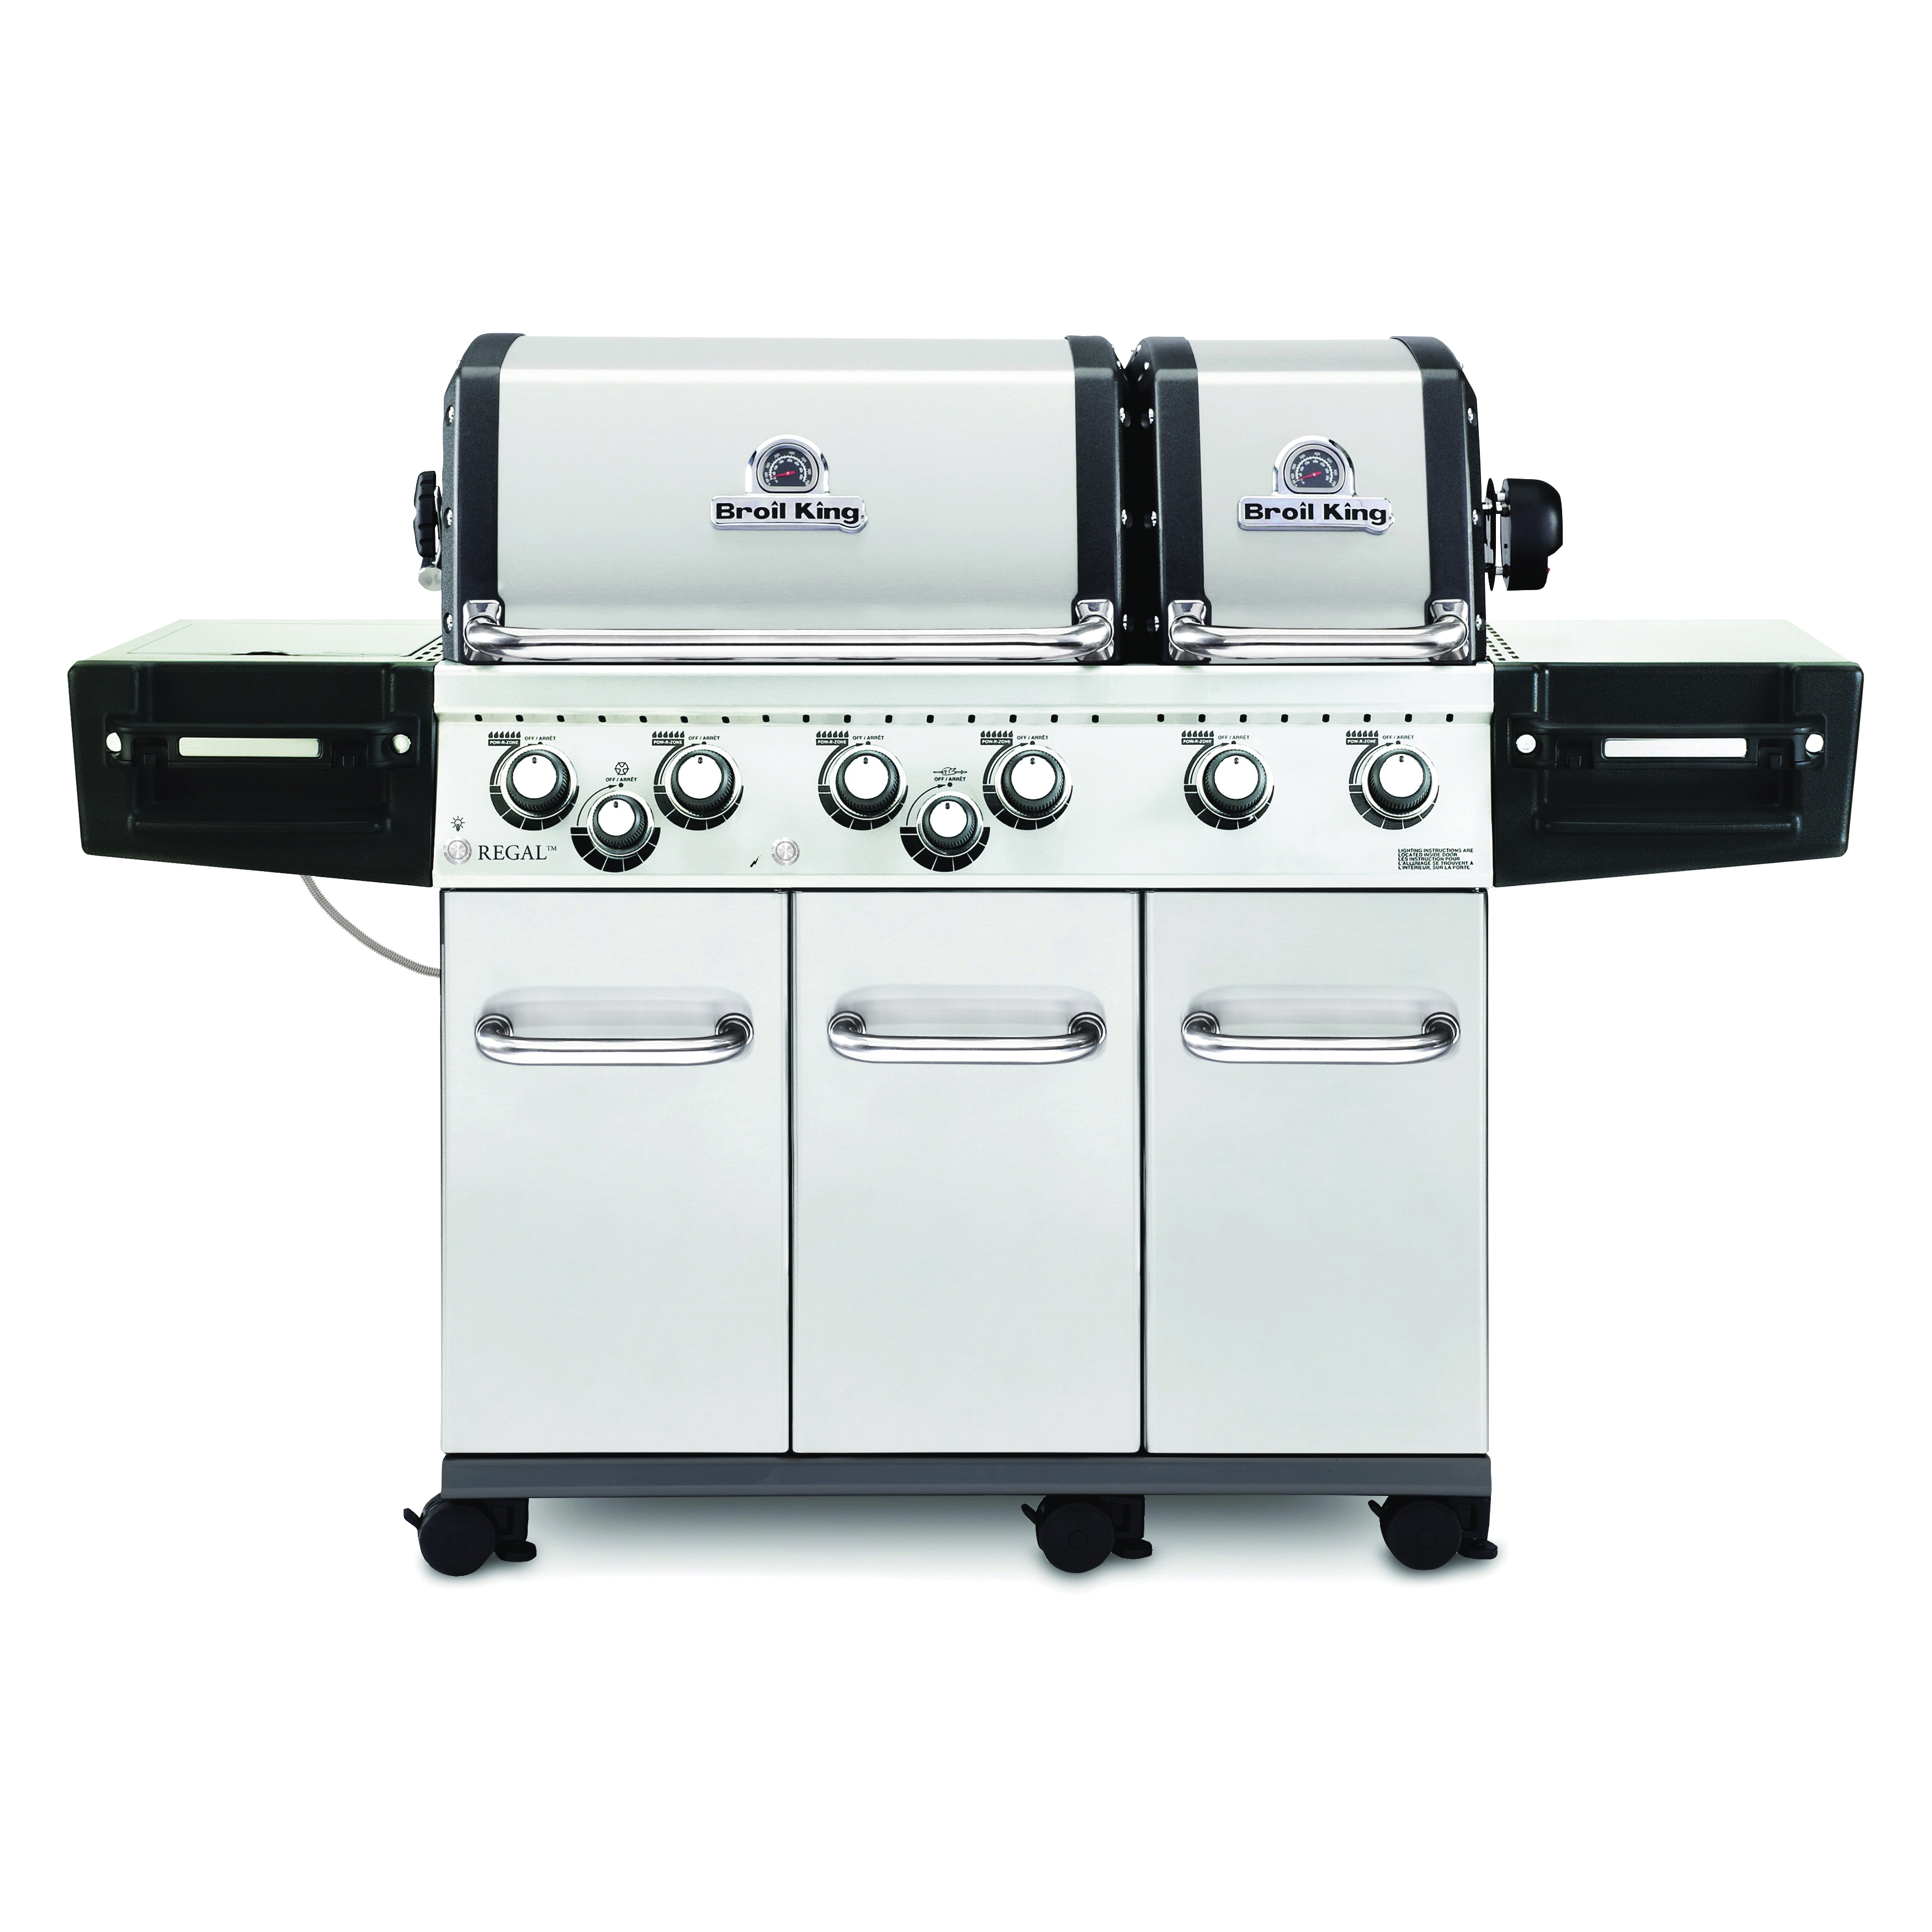 Picture of Broil King Regal 957347 Gas Grill, 60000 Btu/hr BTU, Natural Gas, 6 -Burner, 250 sq-in Primary Cooking Surface